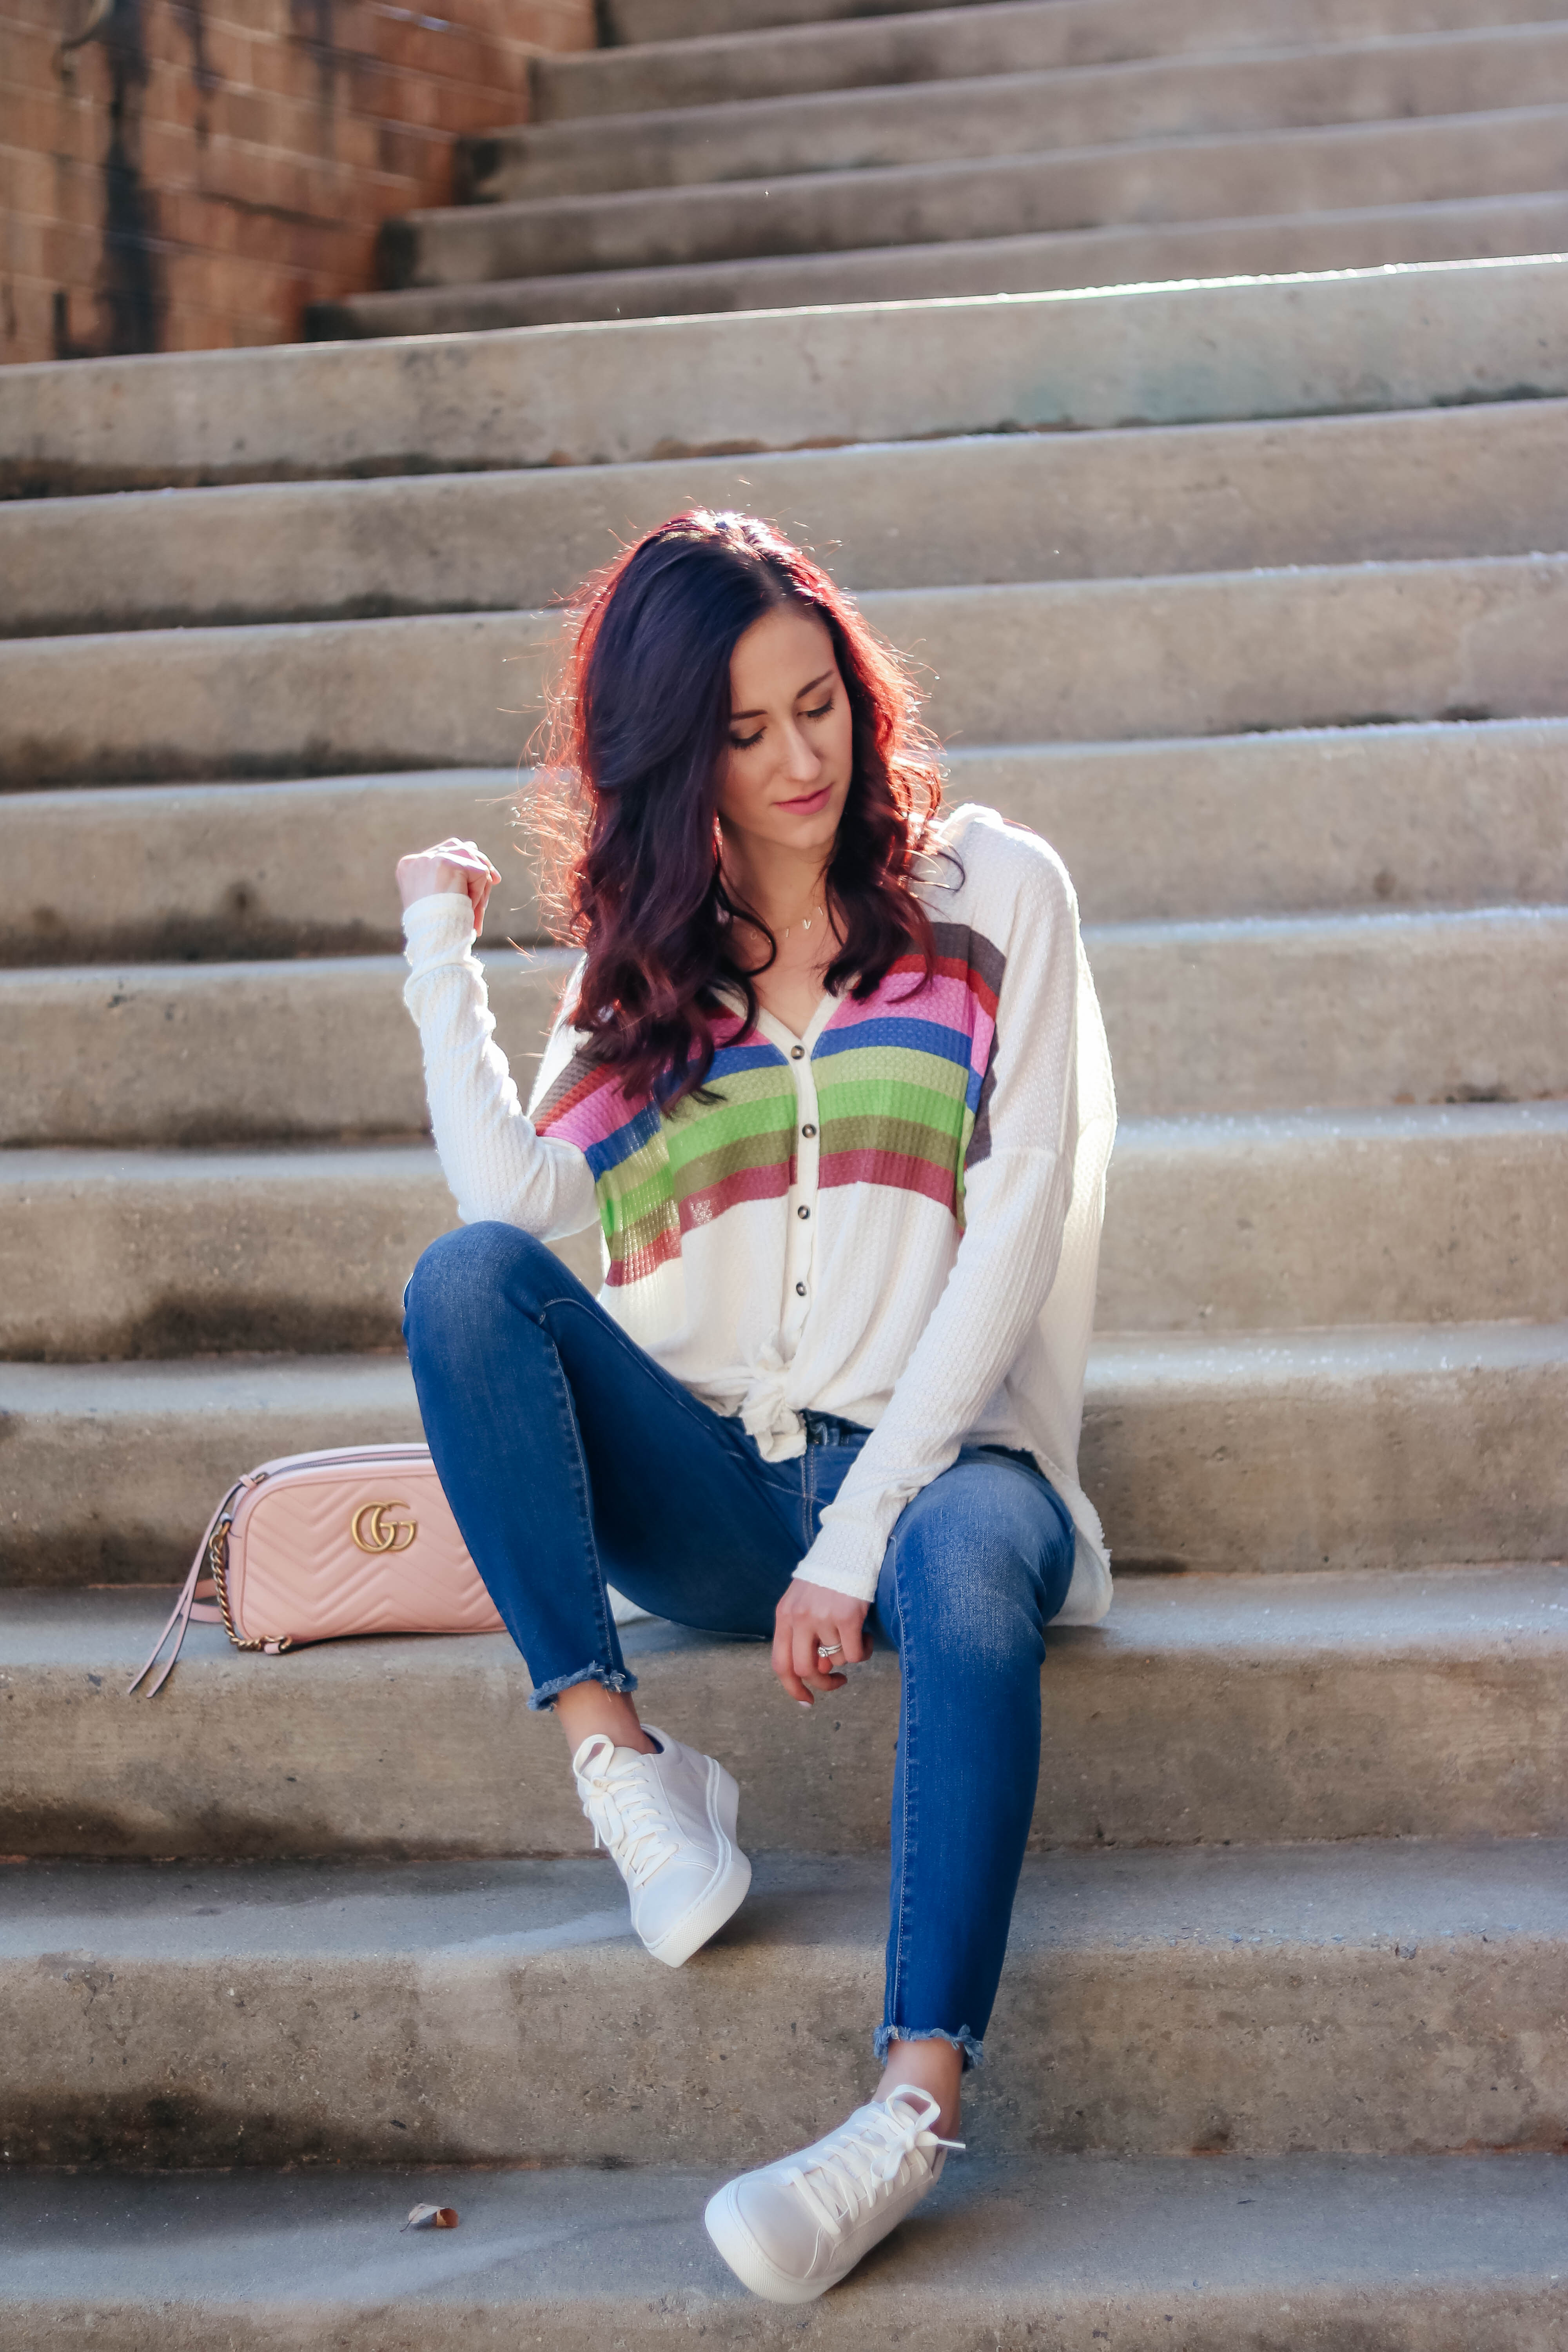 #AskE - What I'm Reading, My Favorite Moroccanoil Products, Balance with a Baby + MORE - Urban Outfitters thermal top, best jeans, Dr. Scholl's sneakers, pink Gucci bag on Coming Up Roses